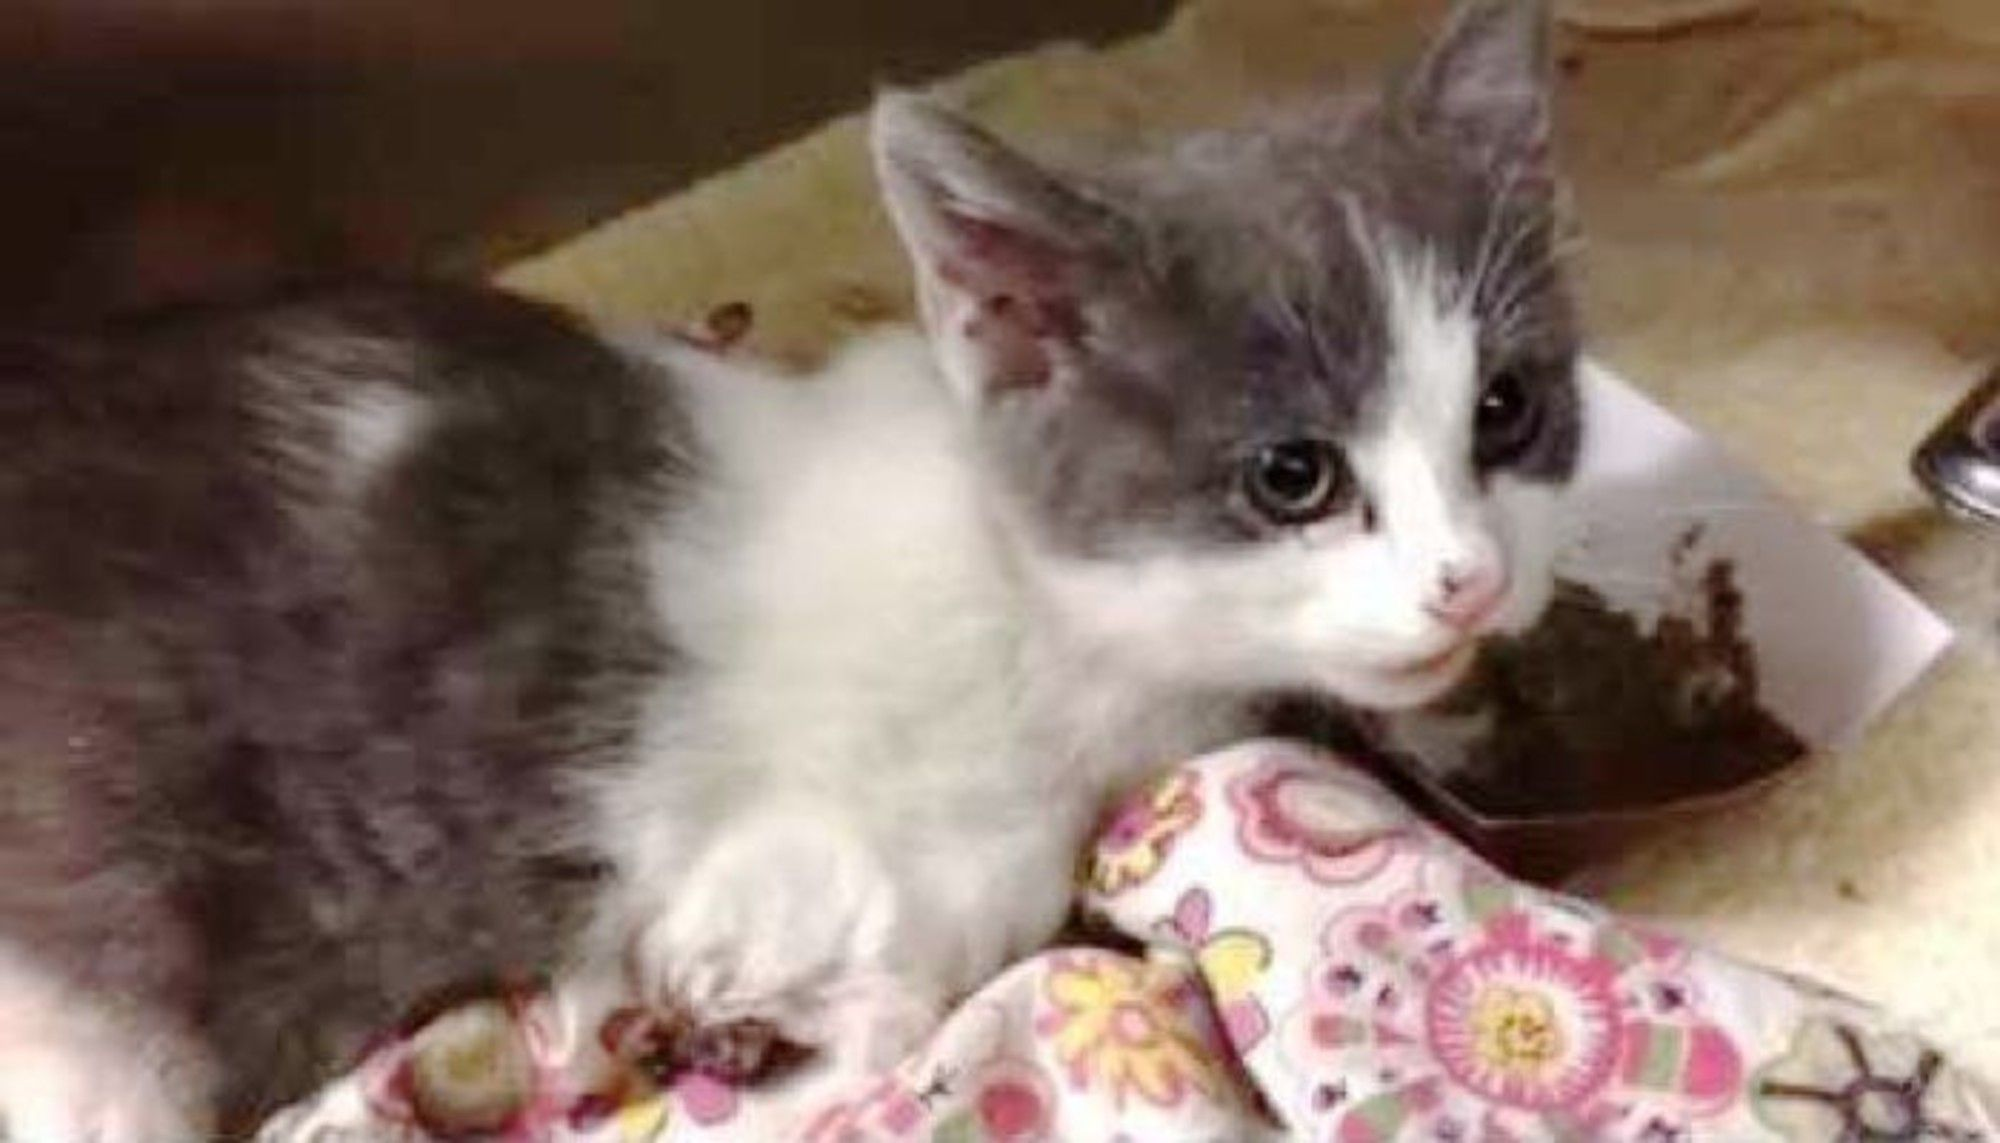 A Tiny 1 5 Pound Rescue Kitten Came To The Vet With A Seriously Injured Paw She Didn 39 T Want To Eat At All But When Som Your Pet Grey Kitten Kitten Rescue